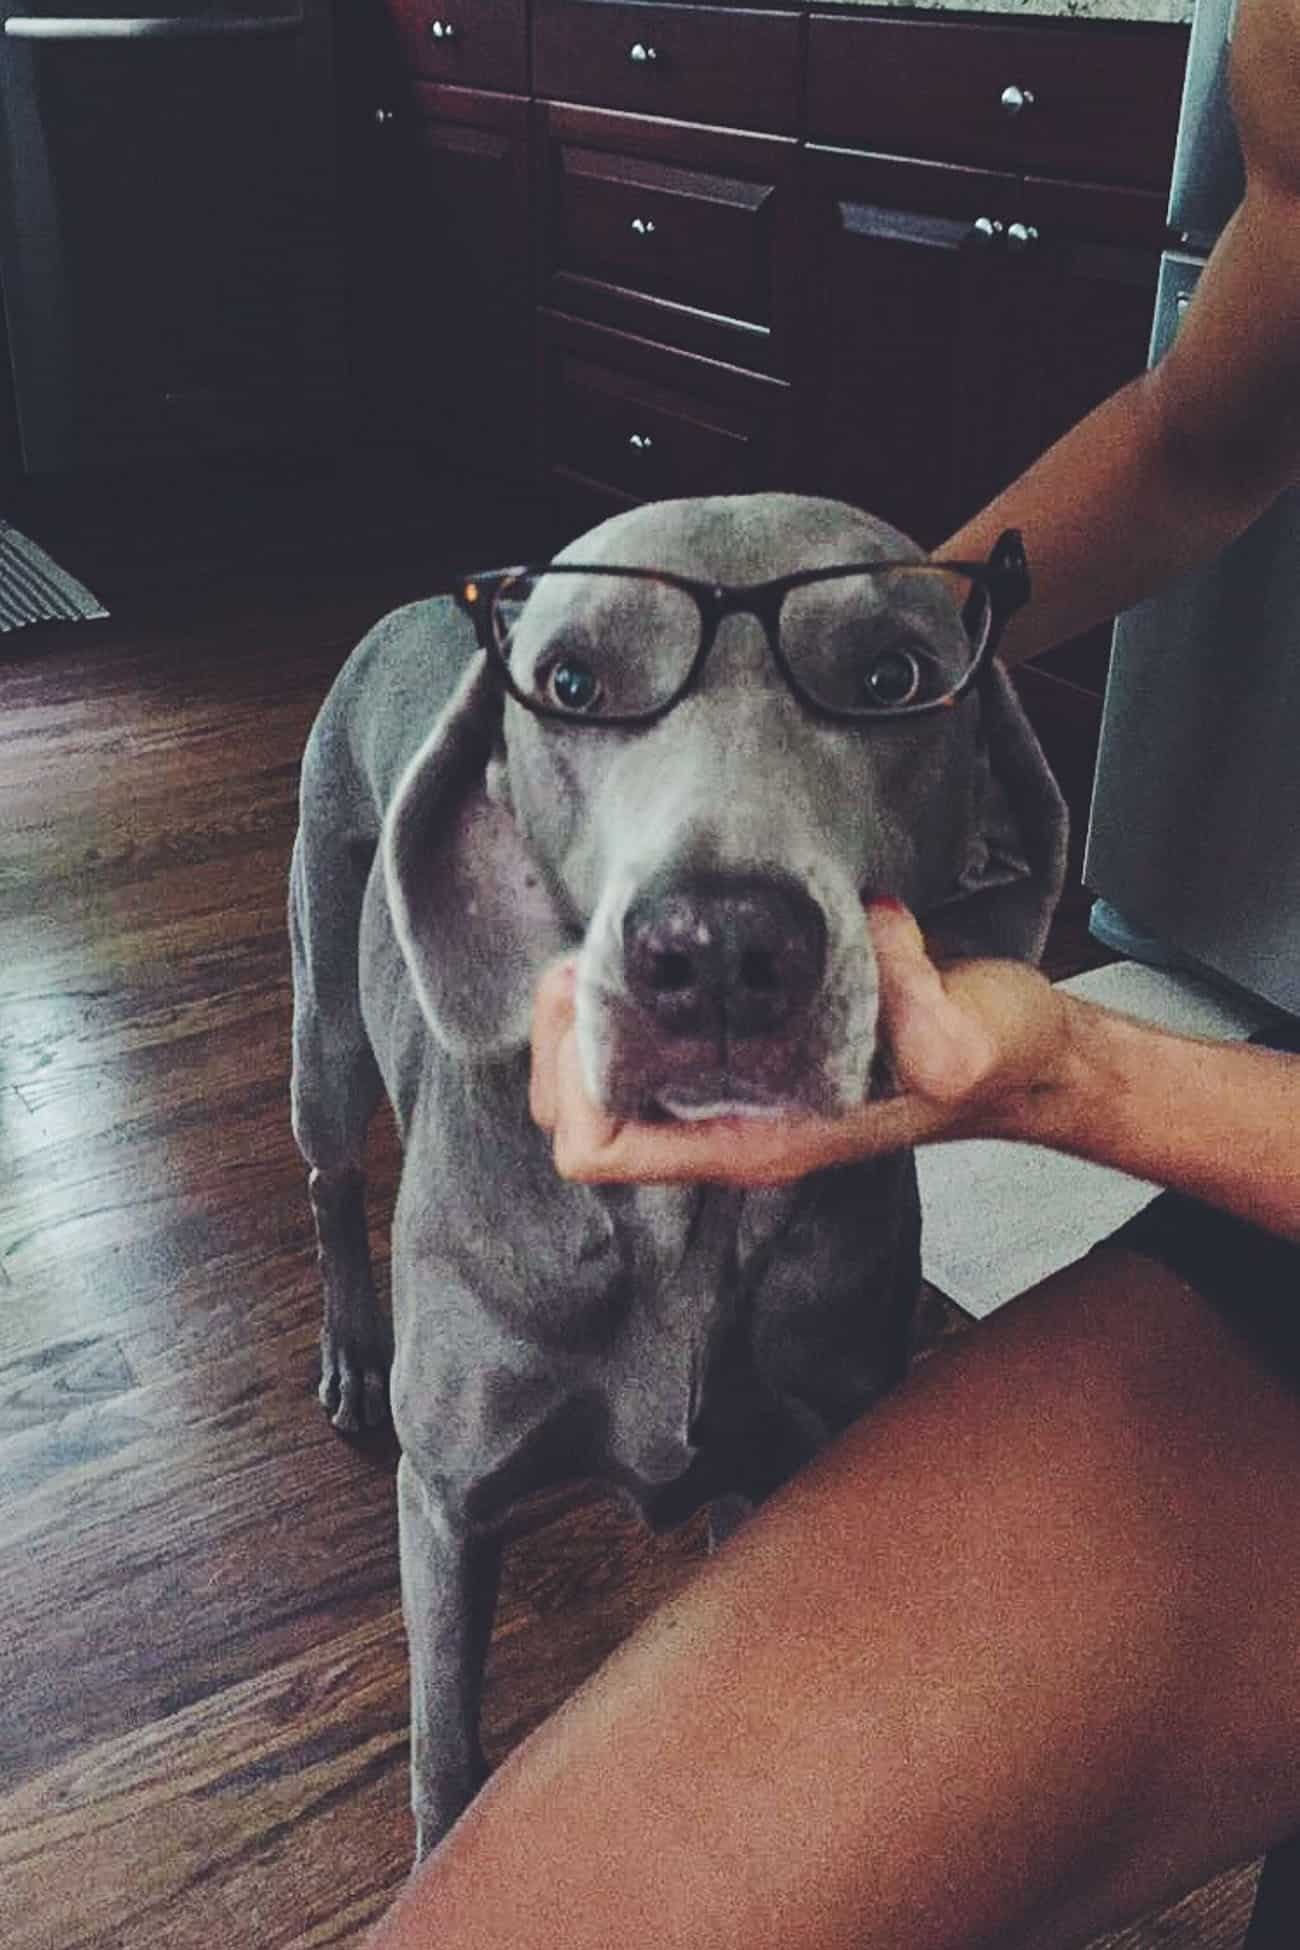 Weimaraner with glasses on